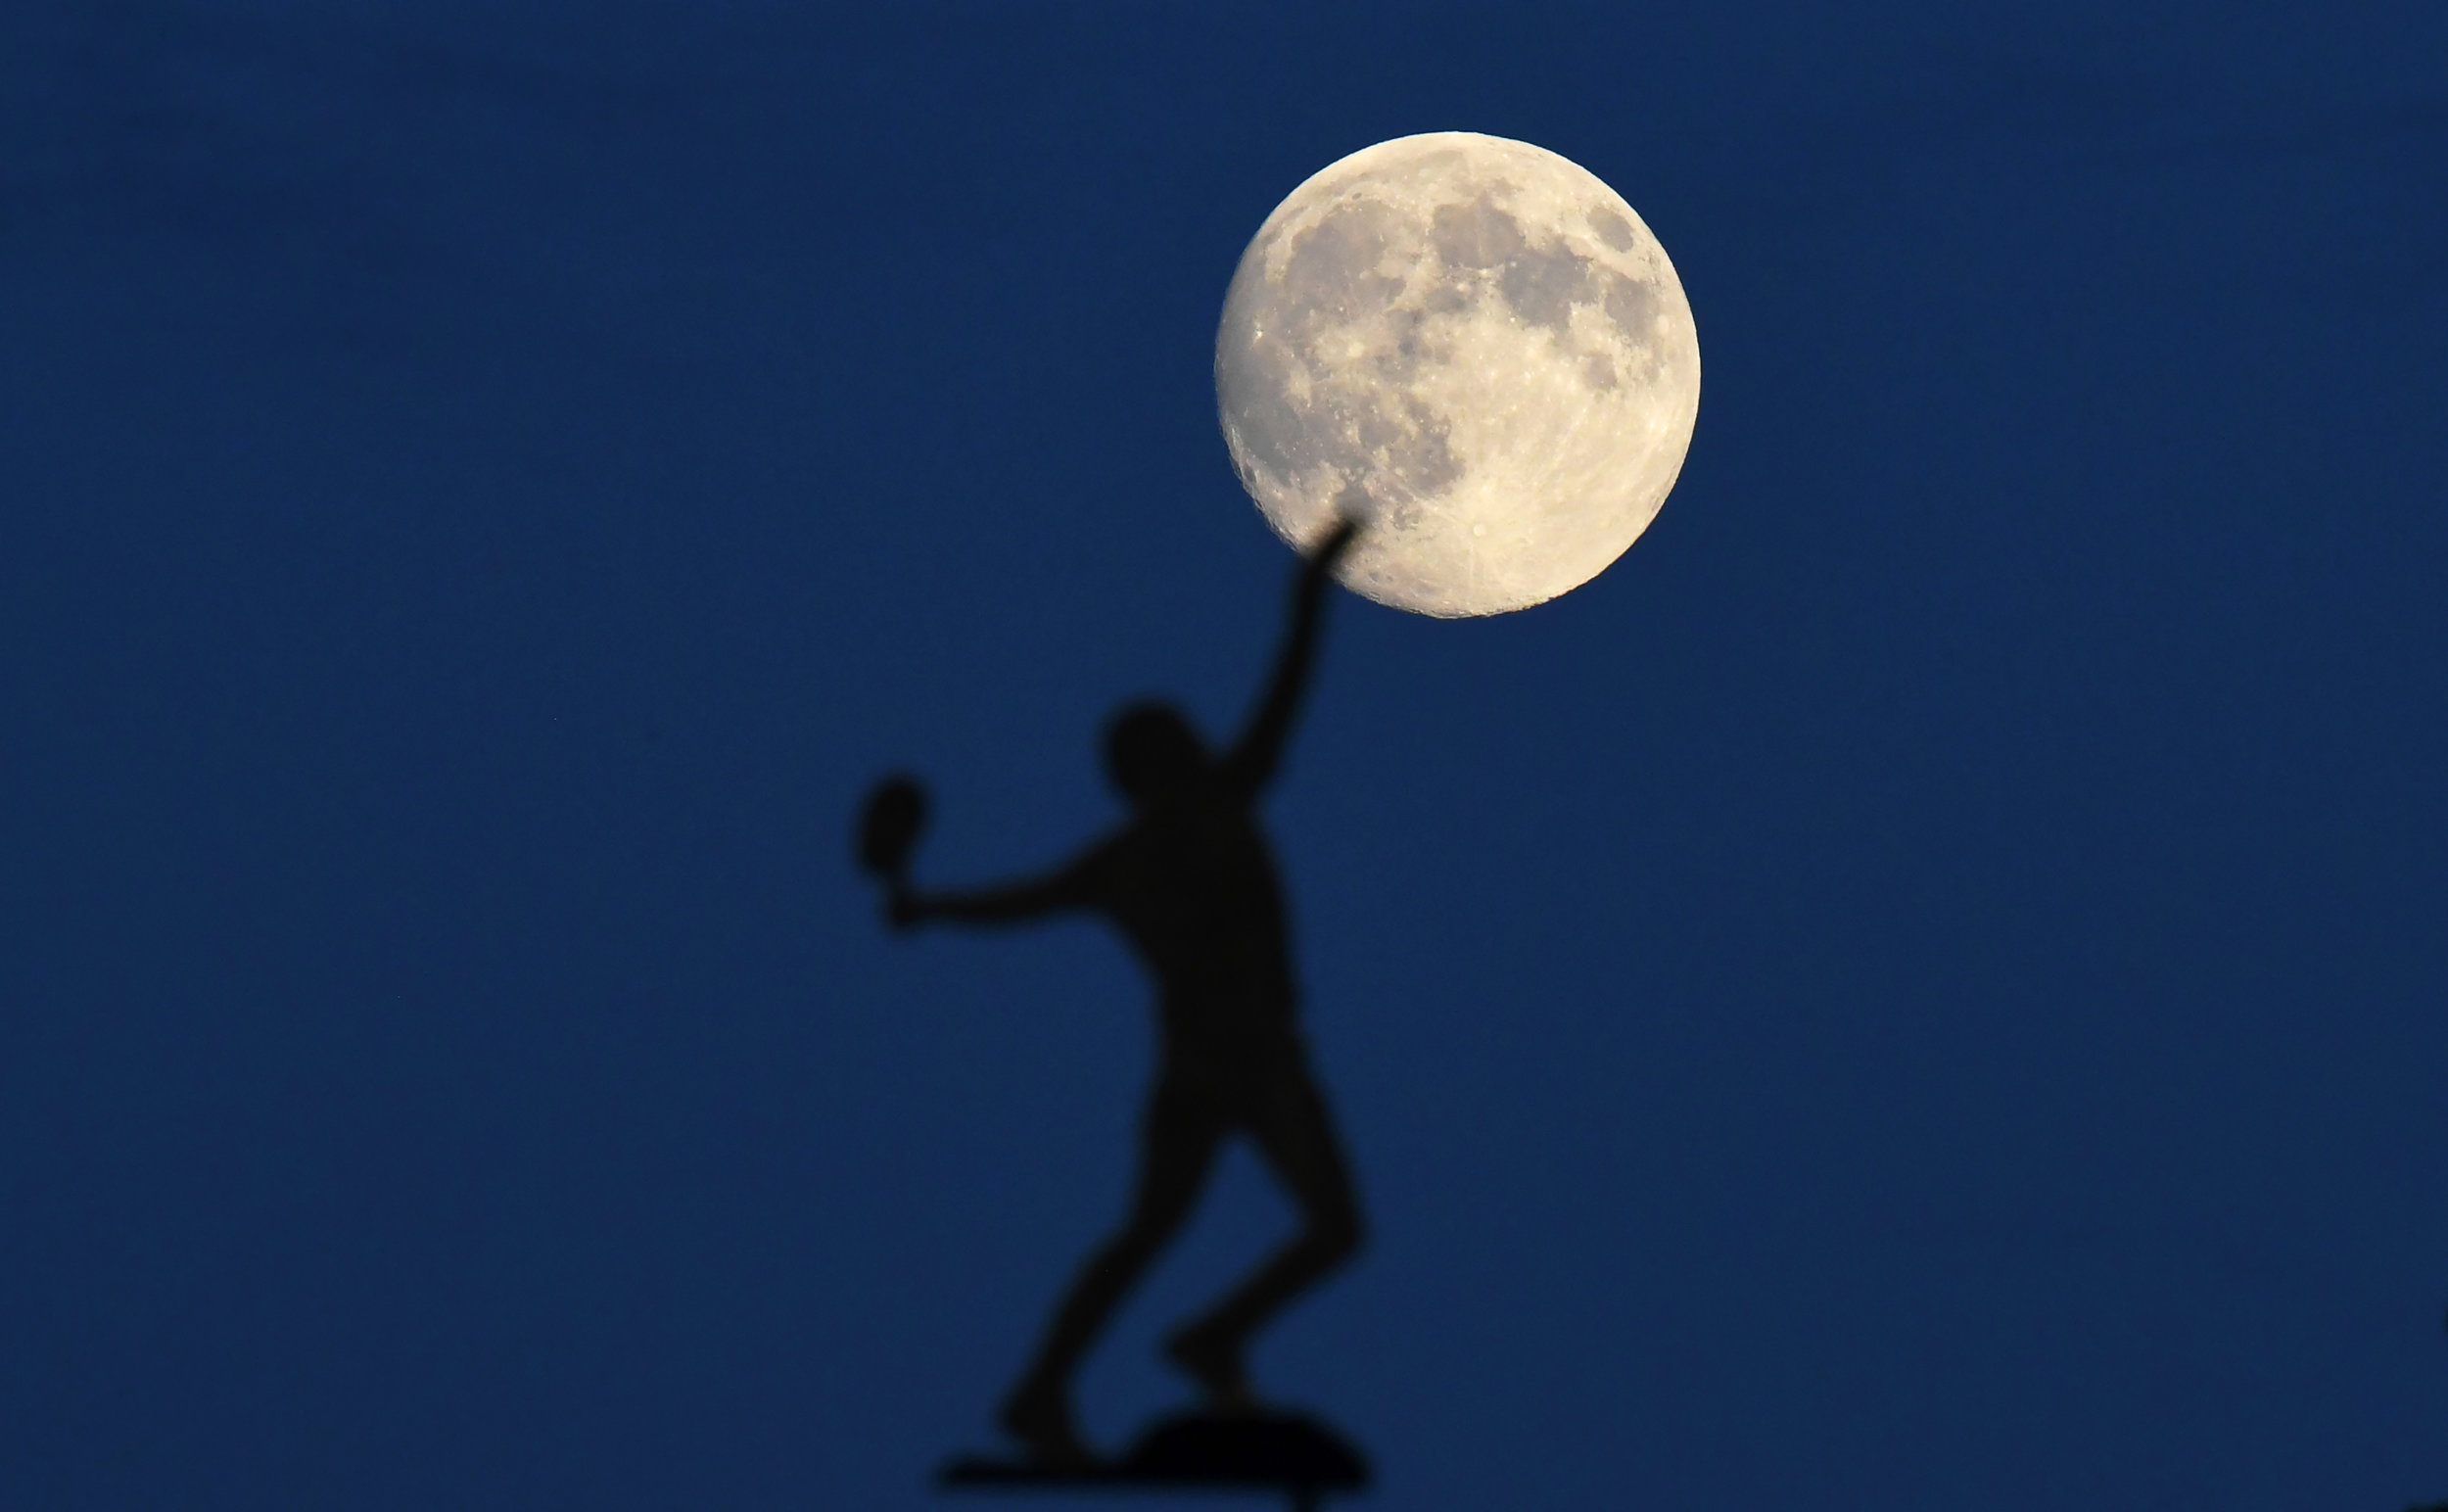 The almost full moon rises behind the weather vane at the All England Lawn Tennis Club at Wimbledon during The Championships.Photo by Facundo Arrizabalaga  17 July 2017